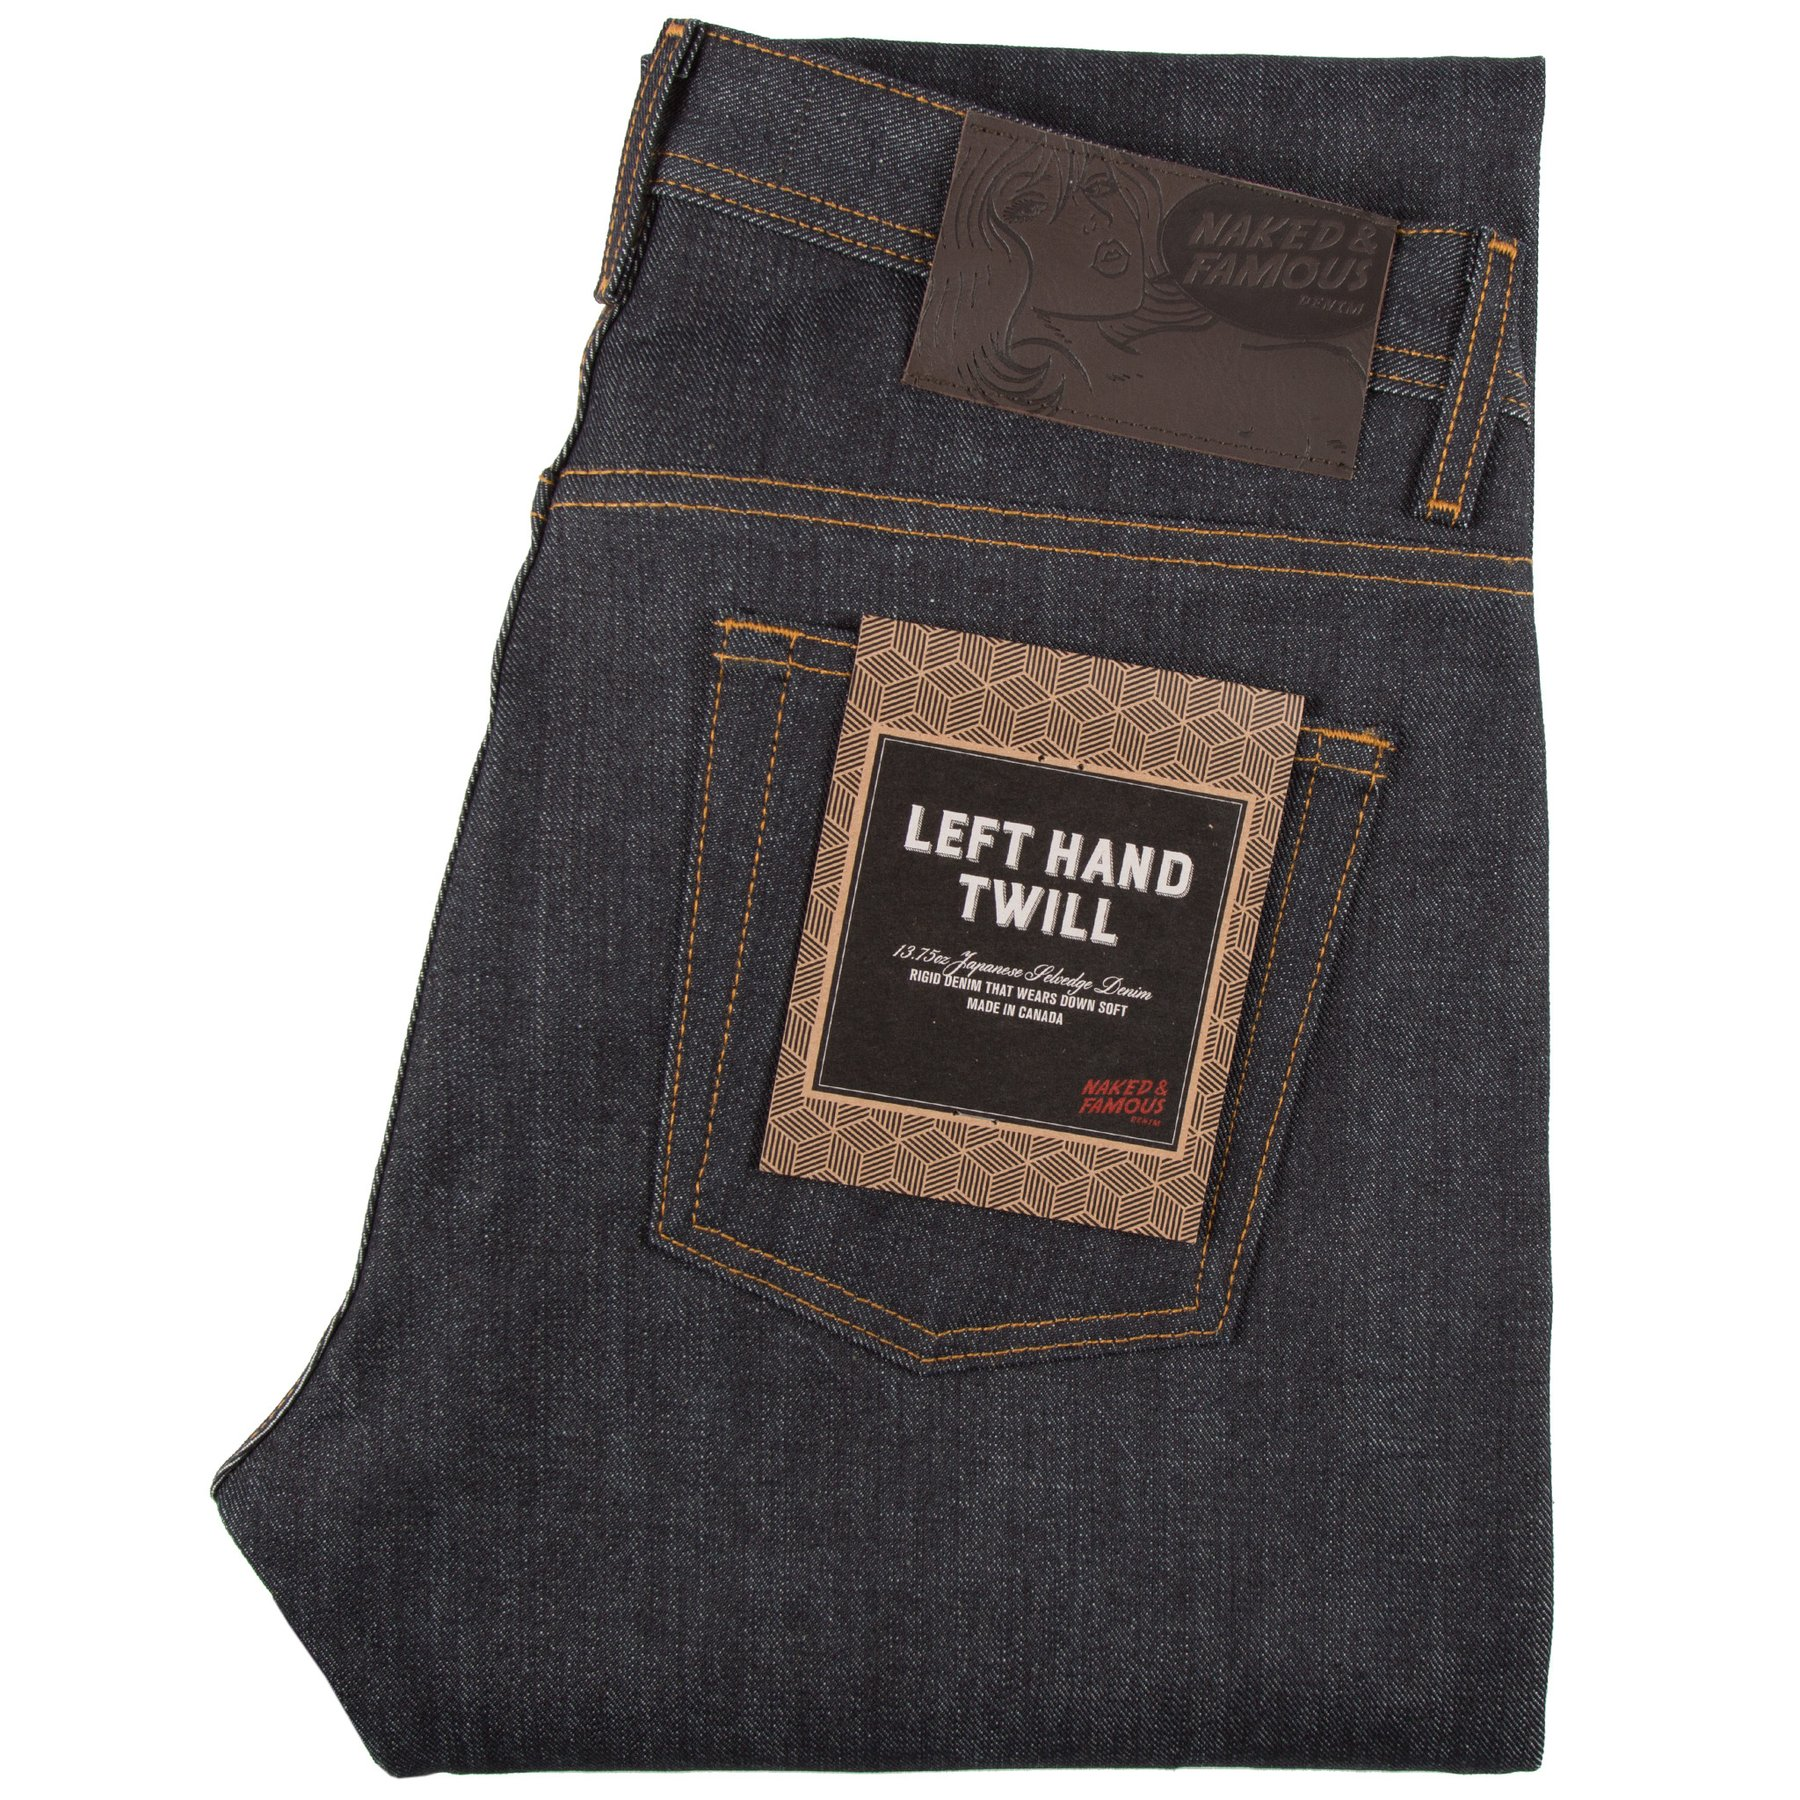 LEFT HAND TWILL SELVEDGE - Super Guy / Weird Guy / Easy Guy / Skinny Guy/ Groovy Guy / Strong Guy